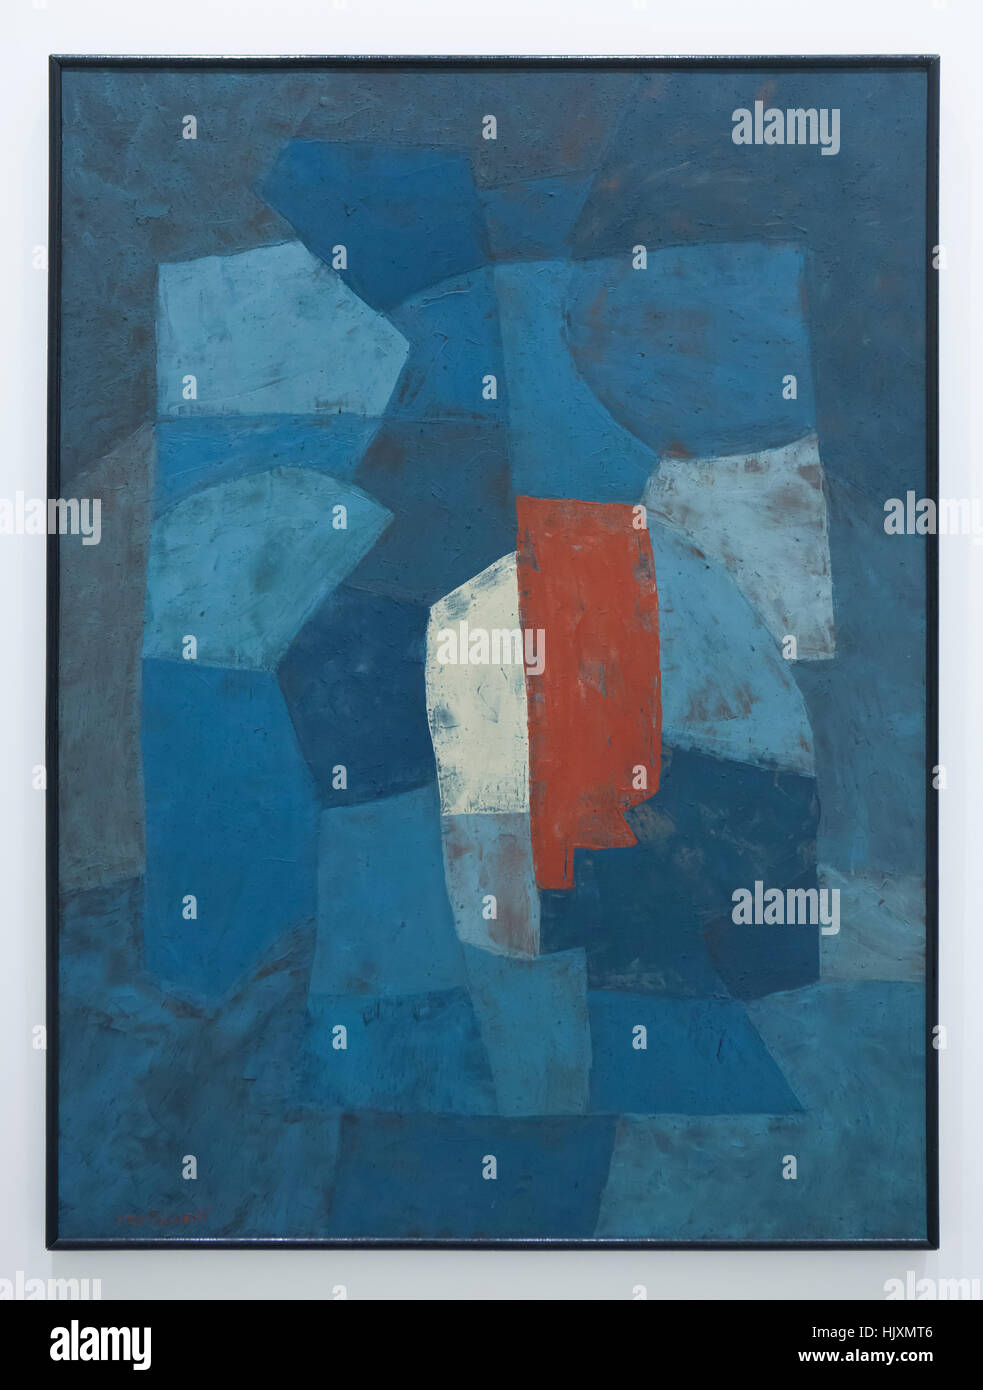 Painting Blue Composition (1953-1954) by Russian-French modernist painter Serge Poliakoff on display in the Musee - Stock Image